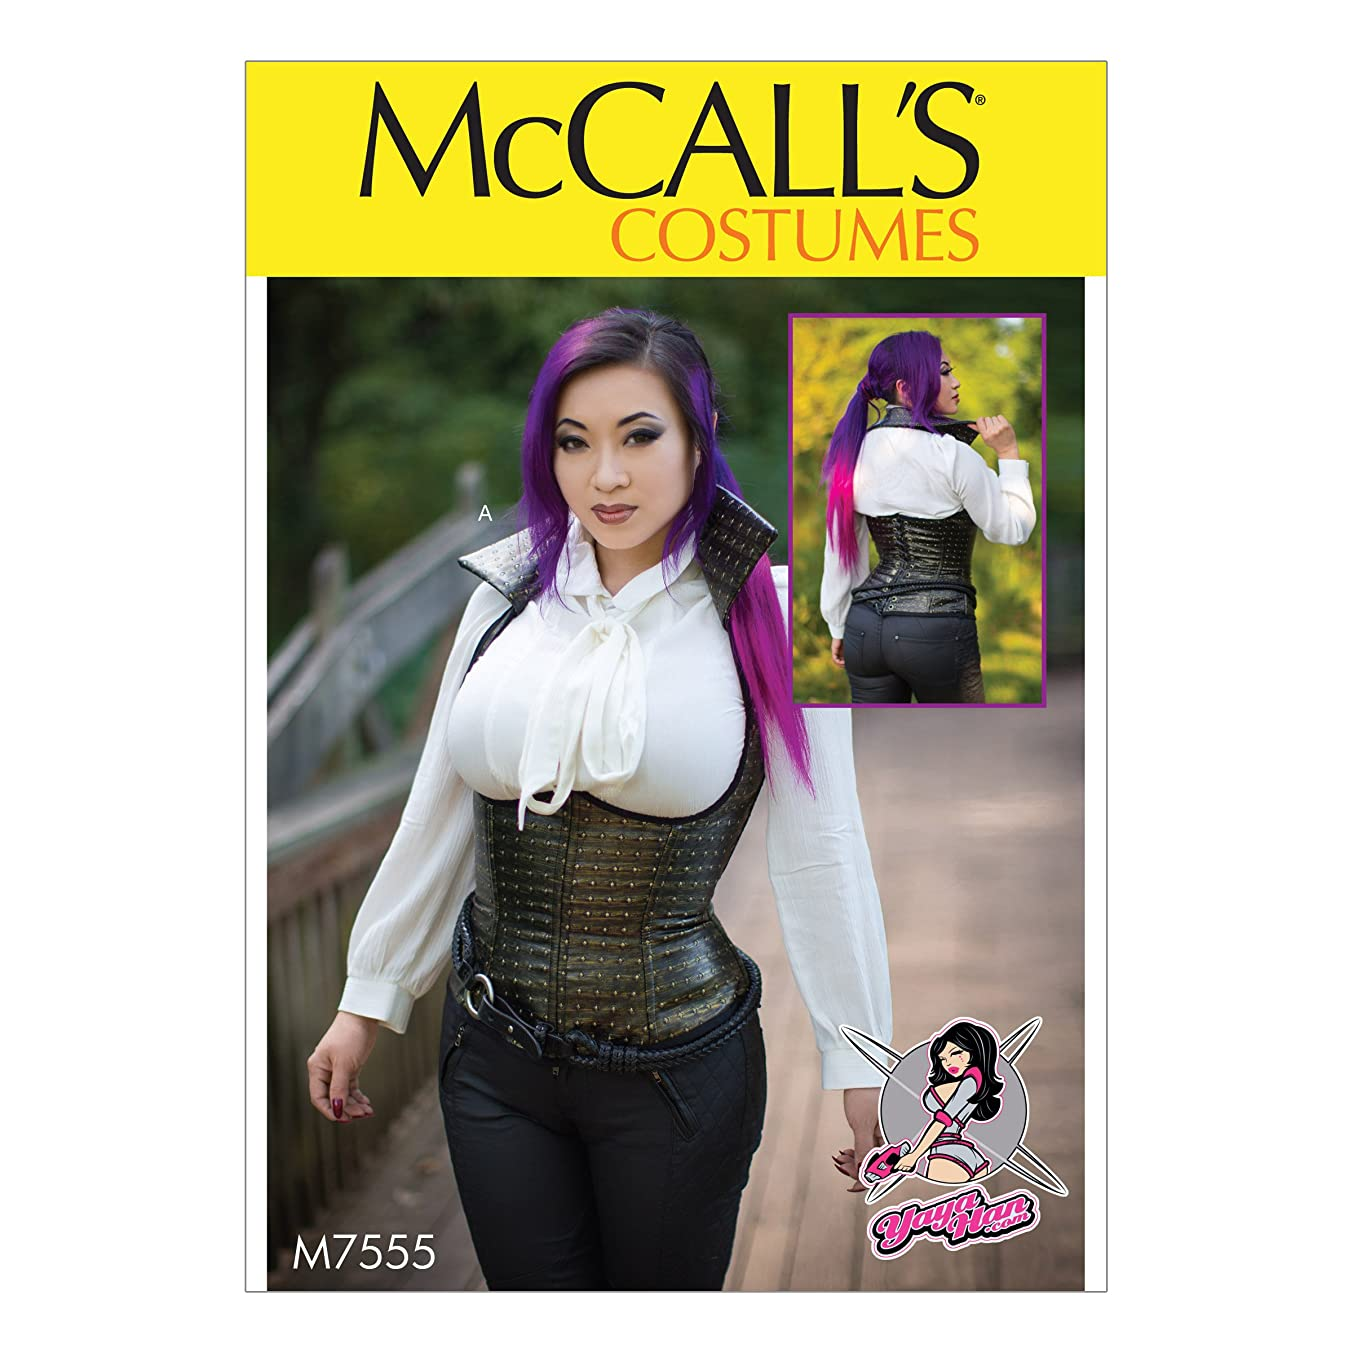 McCall's Patterns M7555E50 Underbust, Corset-Style Vests Sewing Pattern, 14-16-18-20-22